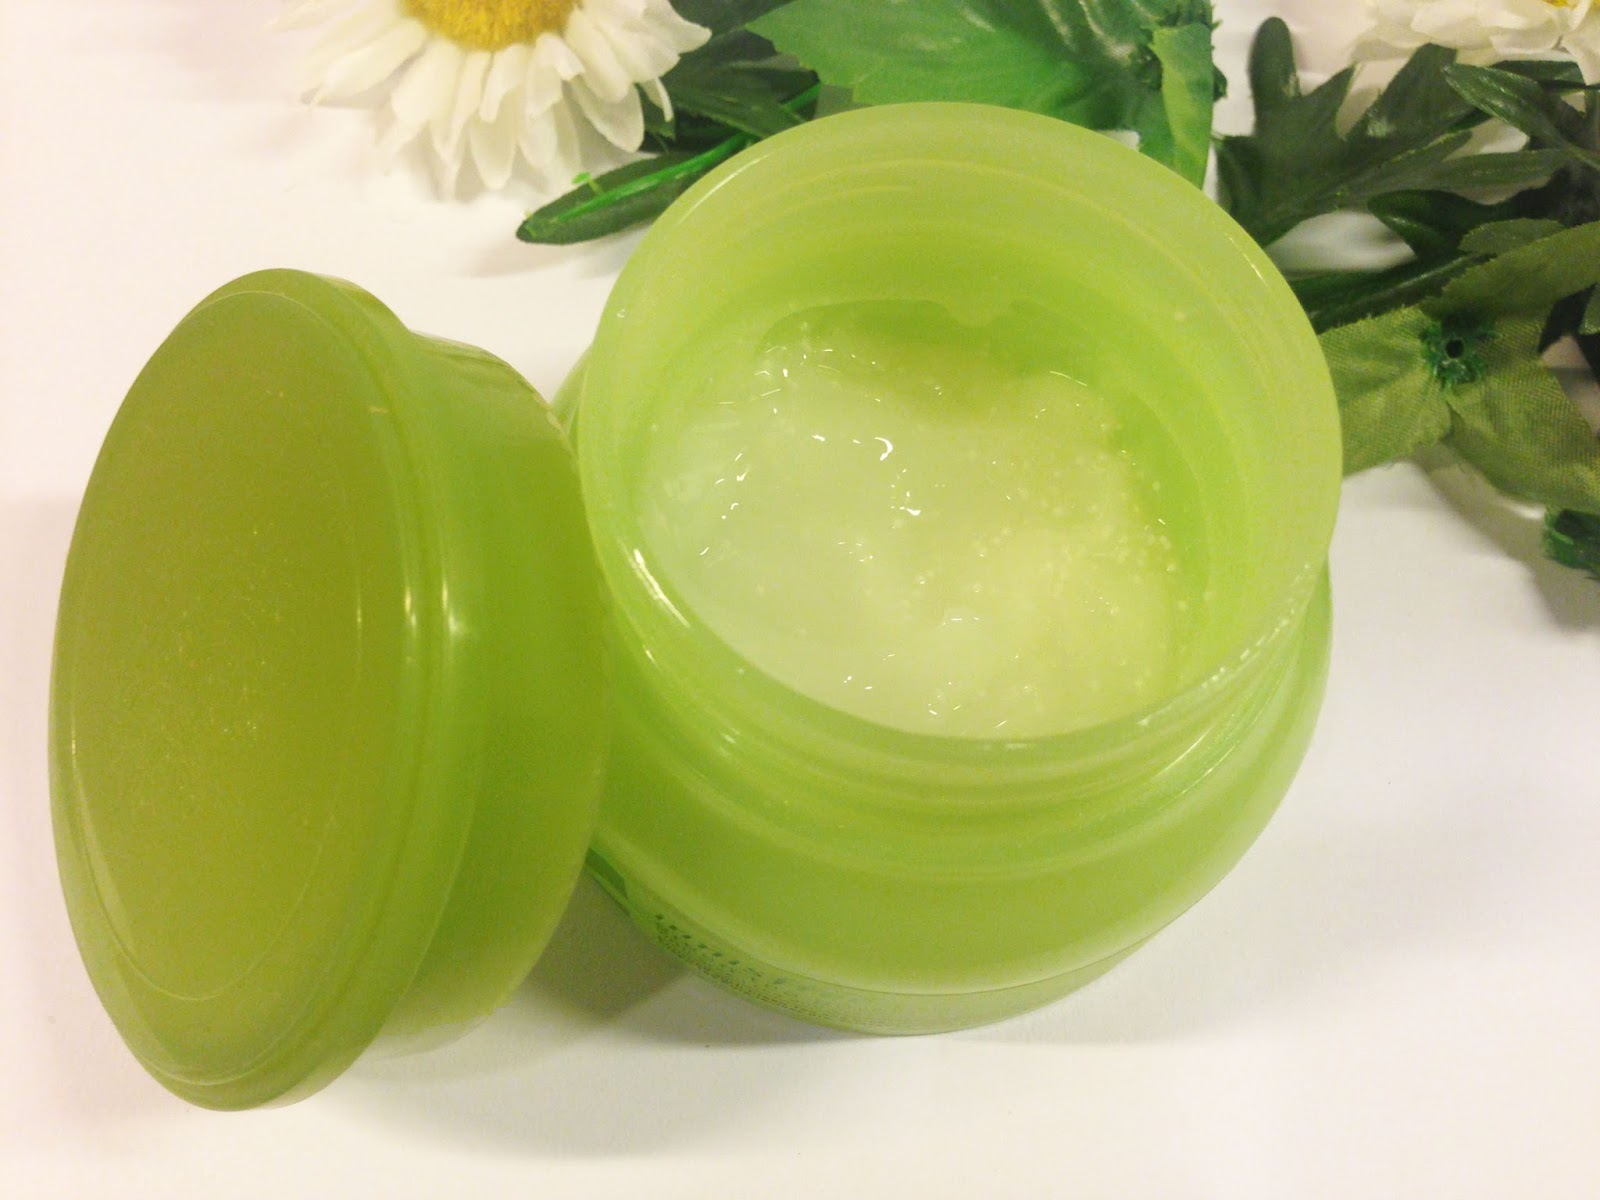 Yaydenicia Review Innisfree Green Tea Pure Sleeping Pack As You Can See Ive Already Used Quite A Bit Of The Stuff